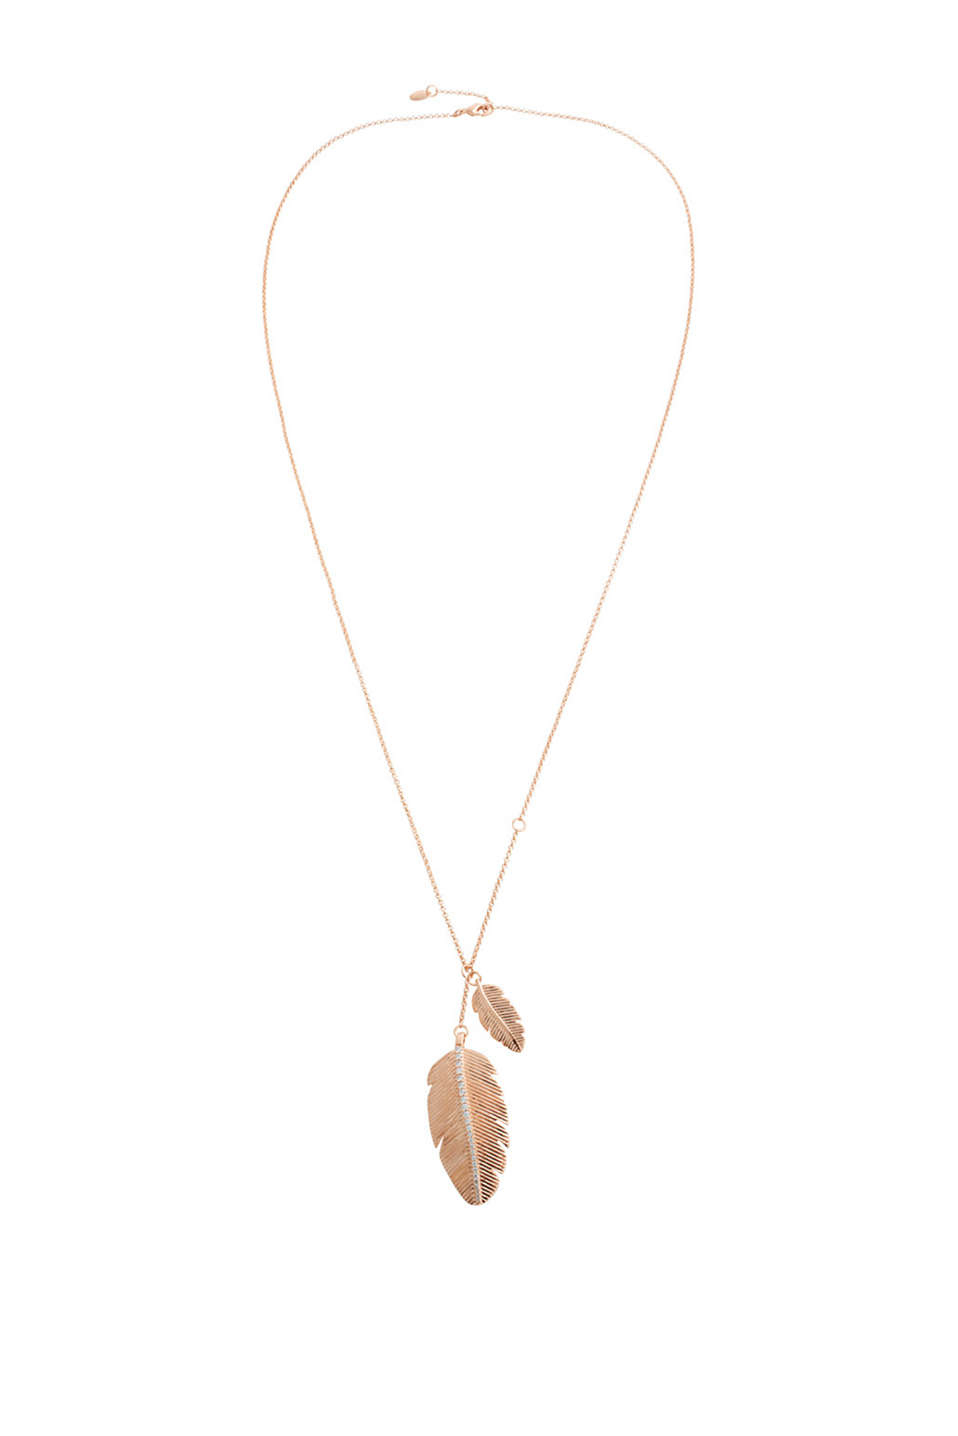 With elegant rose gold plating: long necklace with feather-shaped charms and set with zirconia